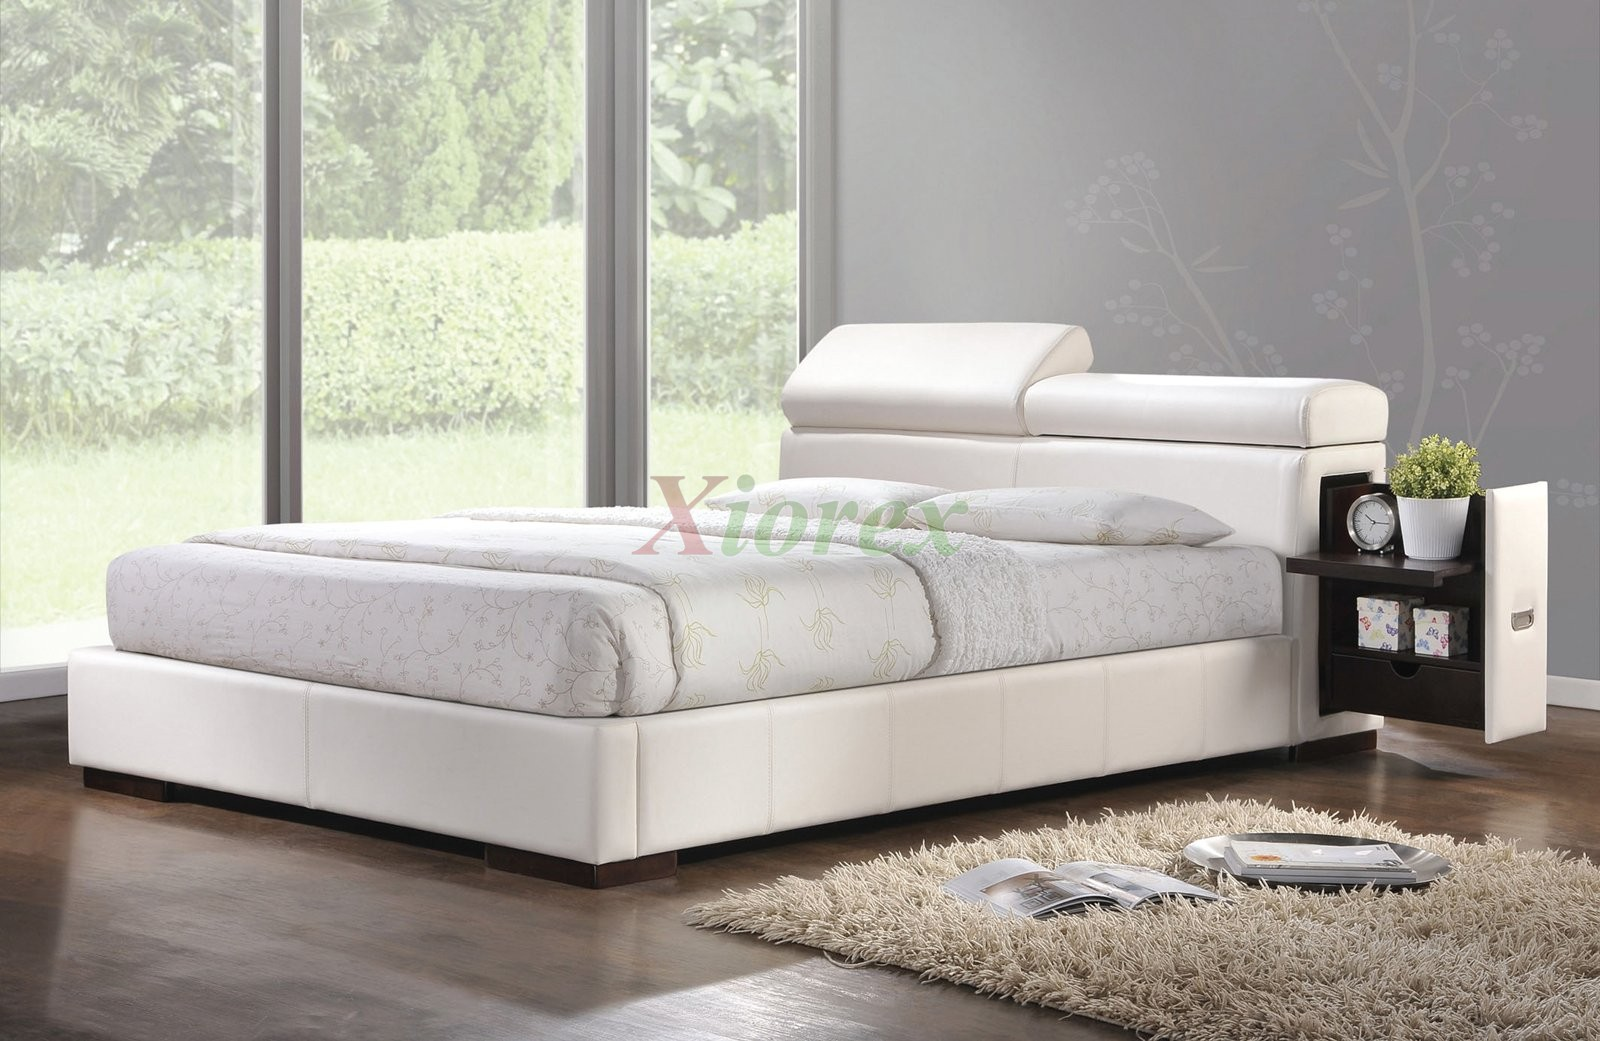 upholstered platform bed furniture w storage headboard, Headboard designs